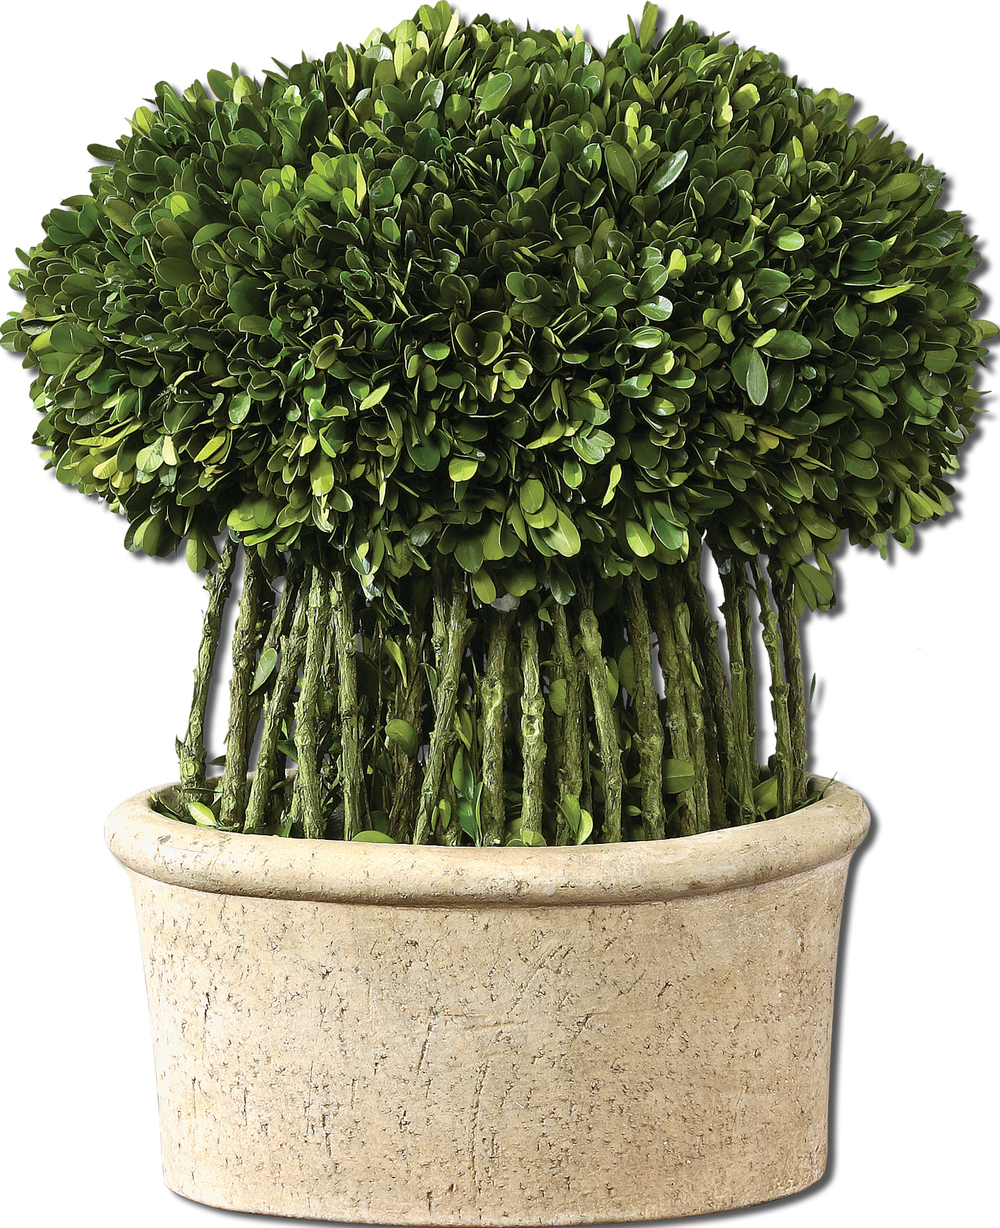 Uttermost Company - Willow Topiary Preserved Boxwood